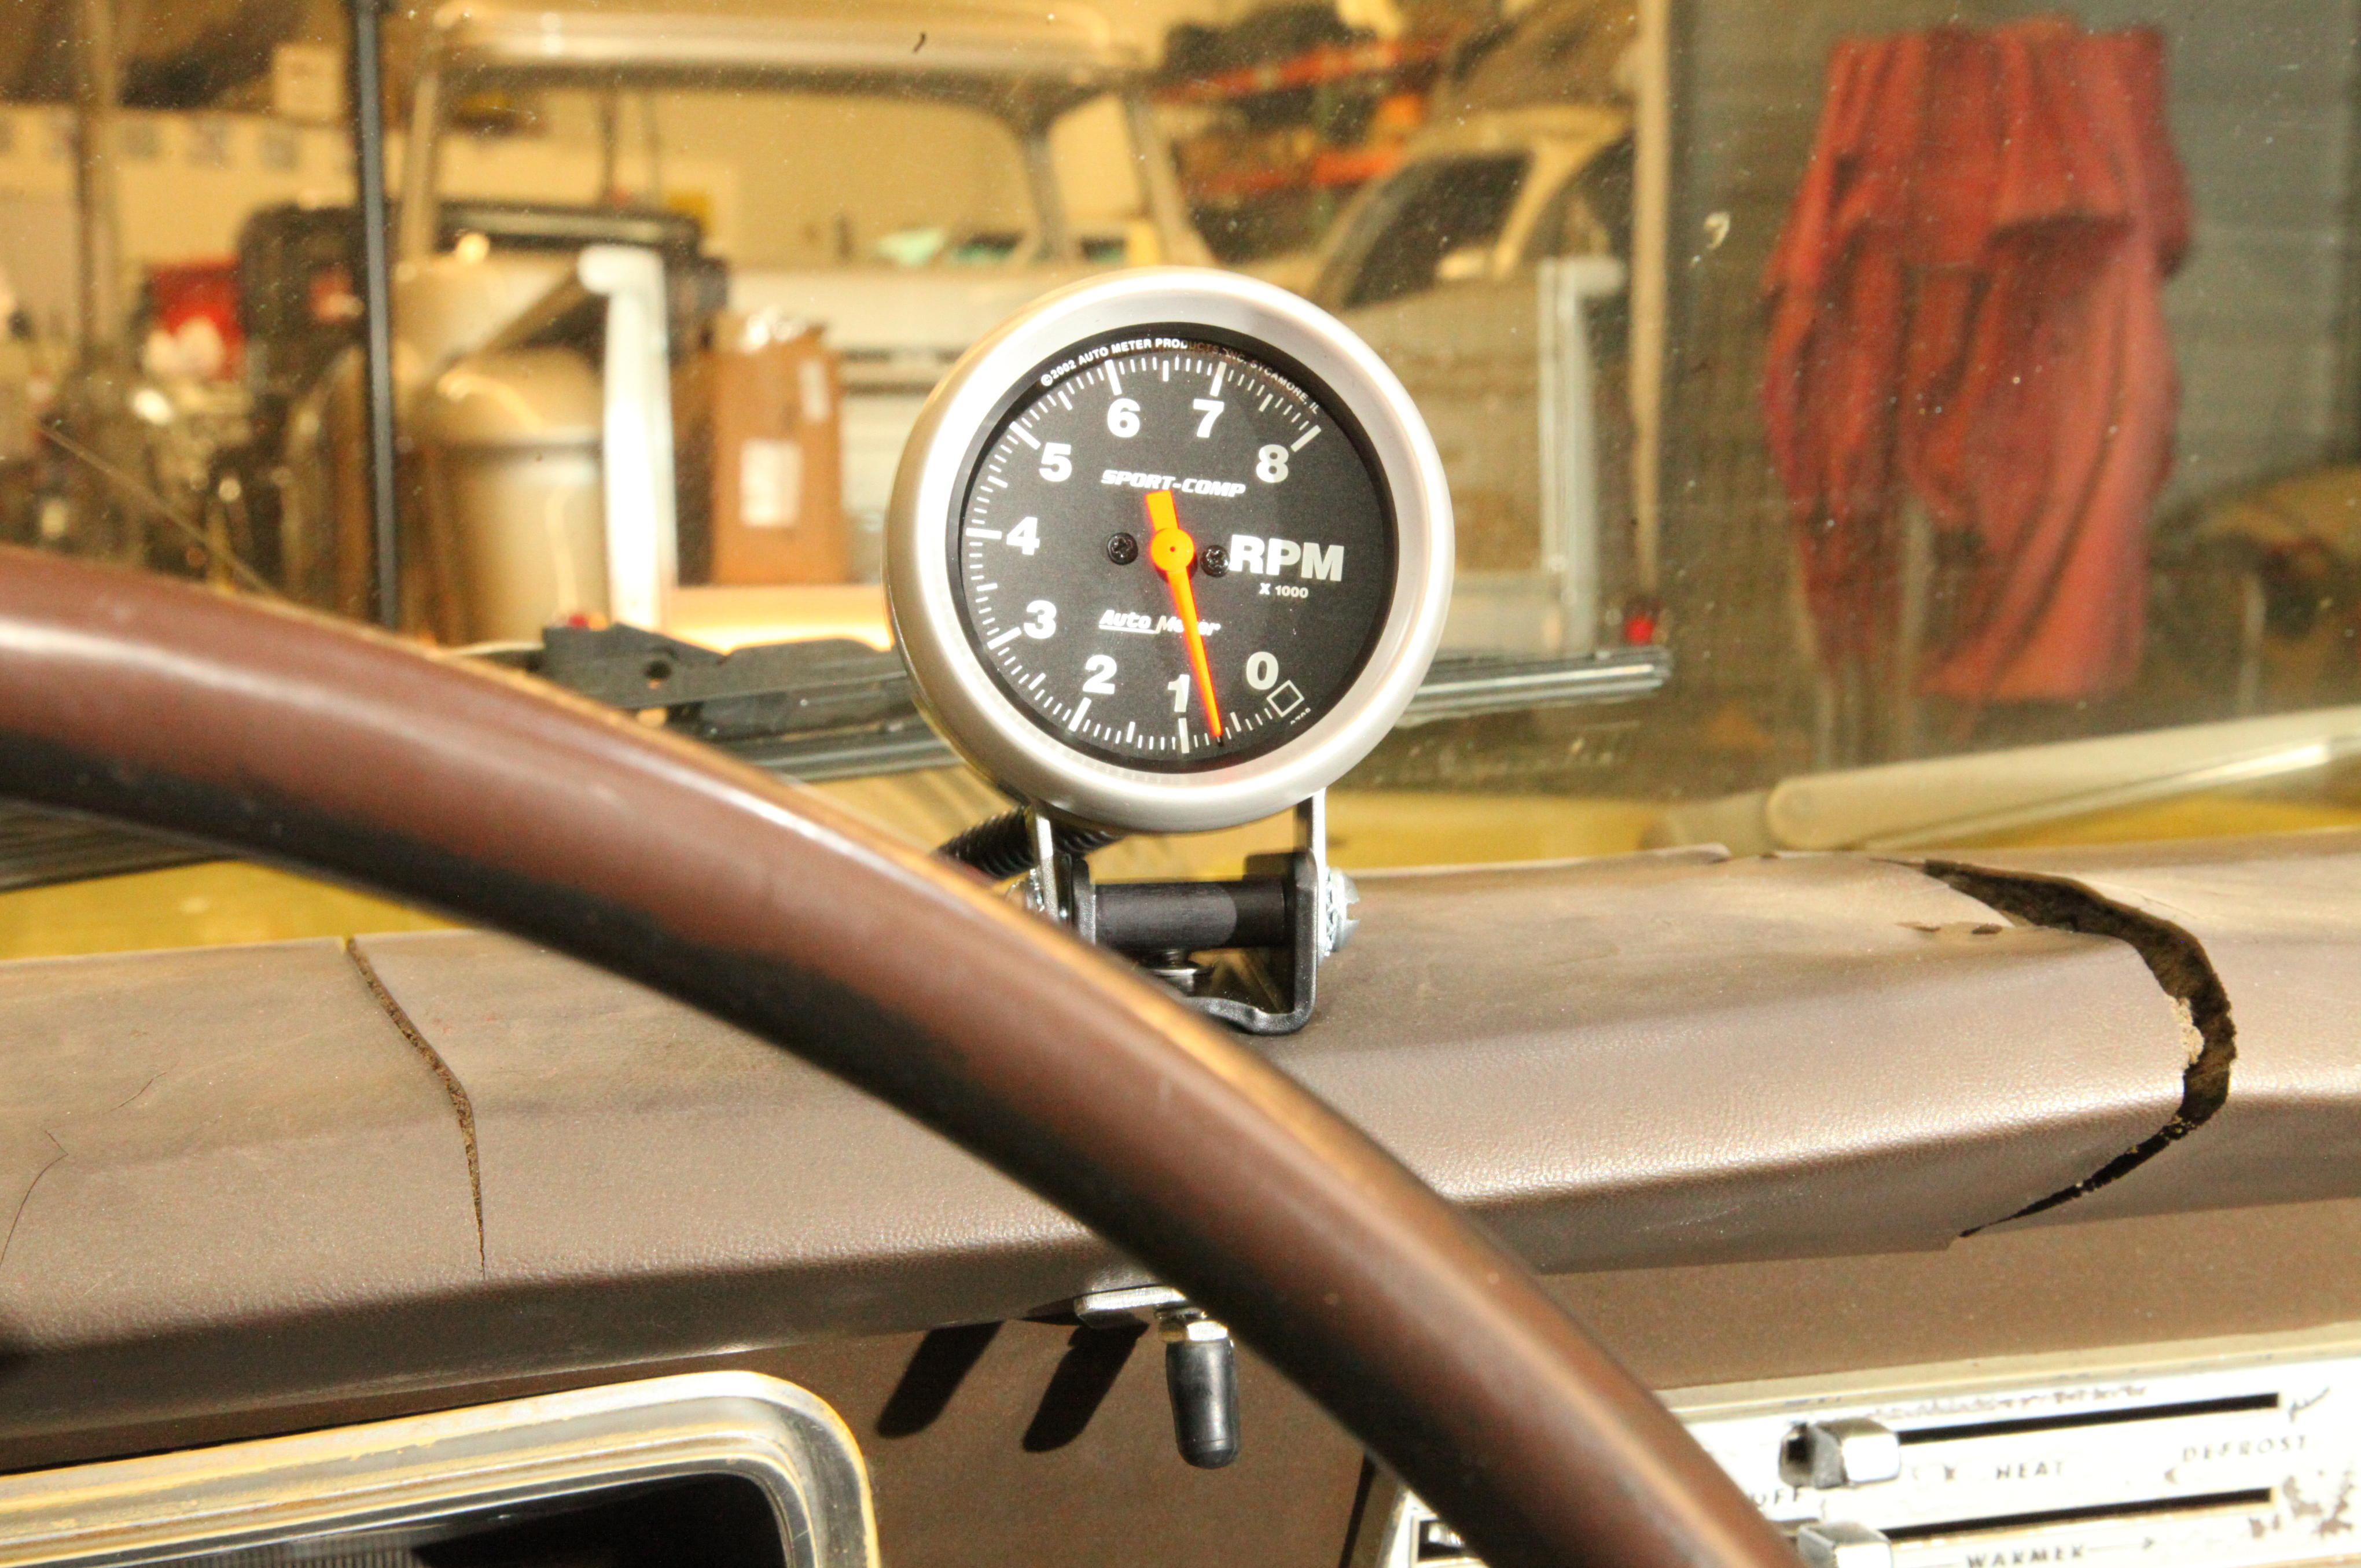 Auto Meter Tachometer - Tach It On - Hot Rod Network on